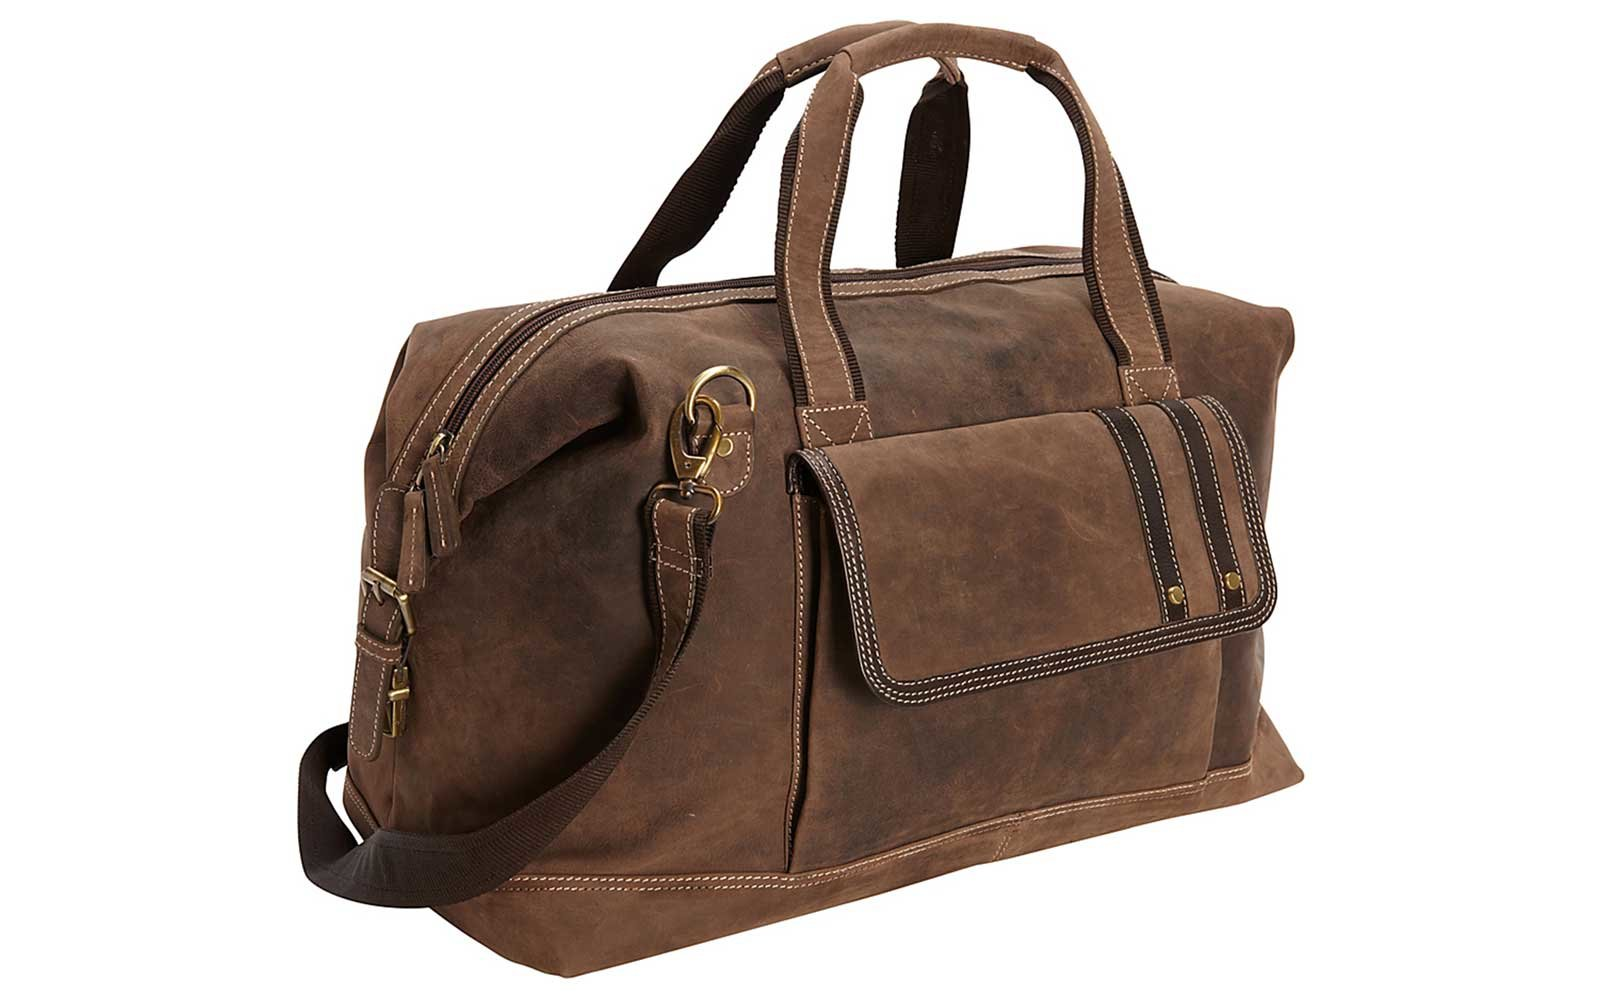 Bellino Leather Duffels for Travel